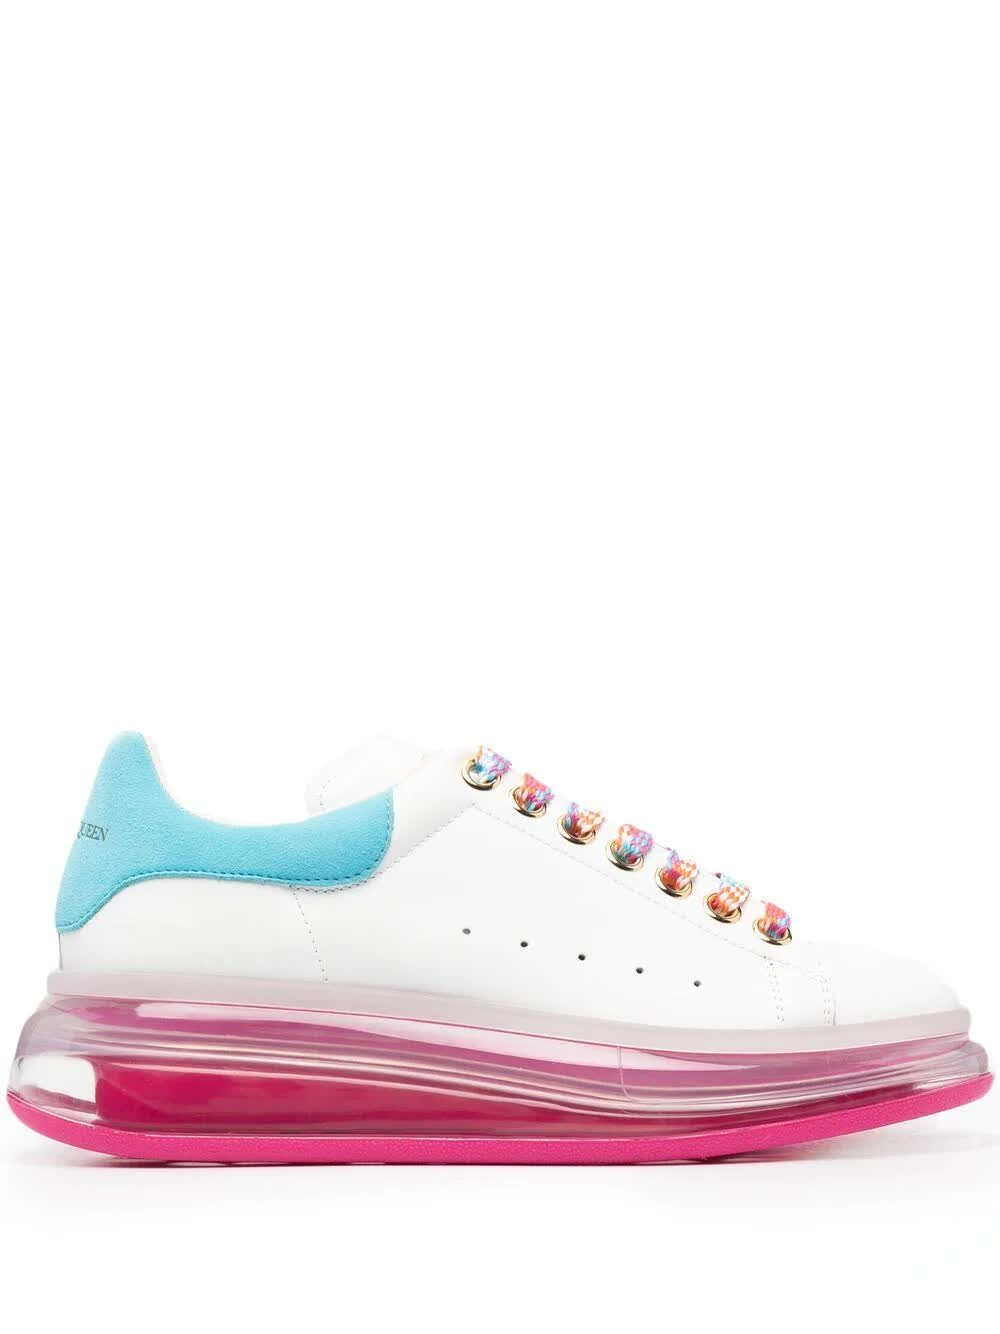 Alexander Mcqueen WOMAN WHITE, PINK AND LIGHT BLUE OVERSIZE SNEAKERS